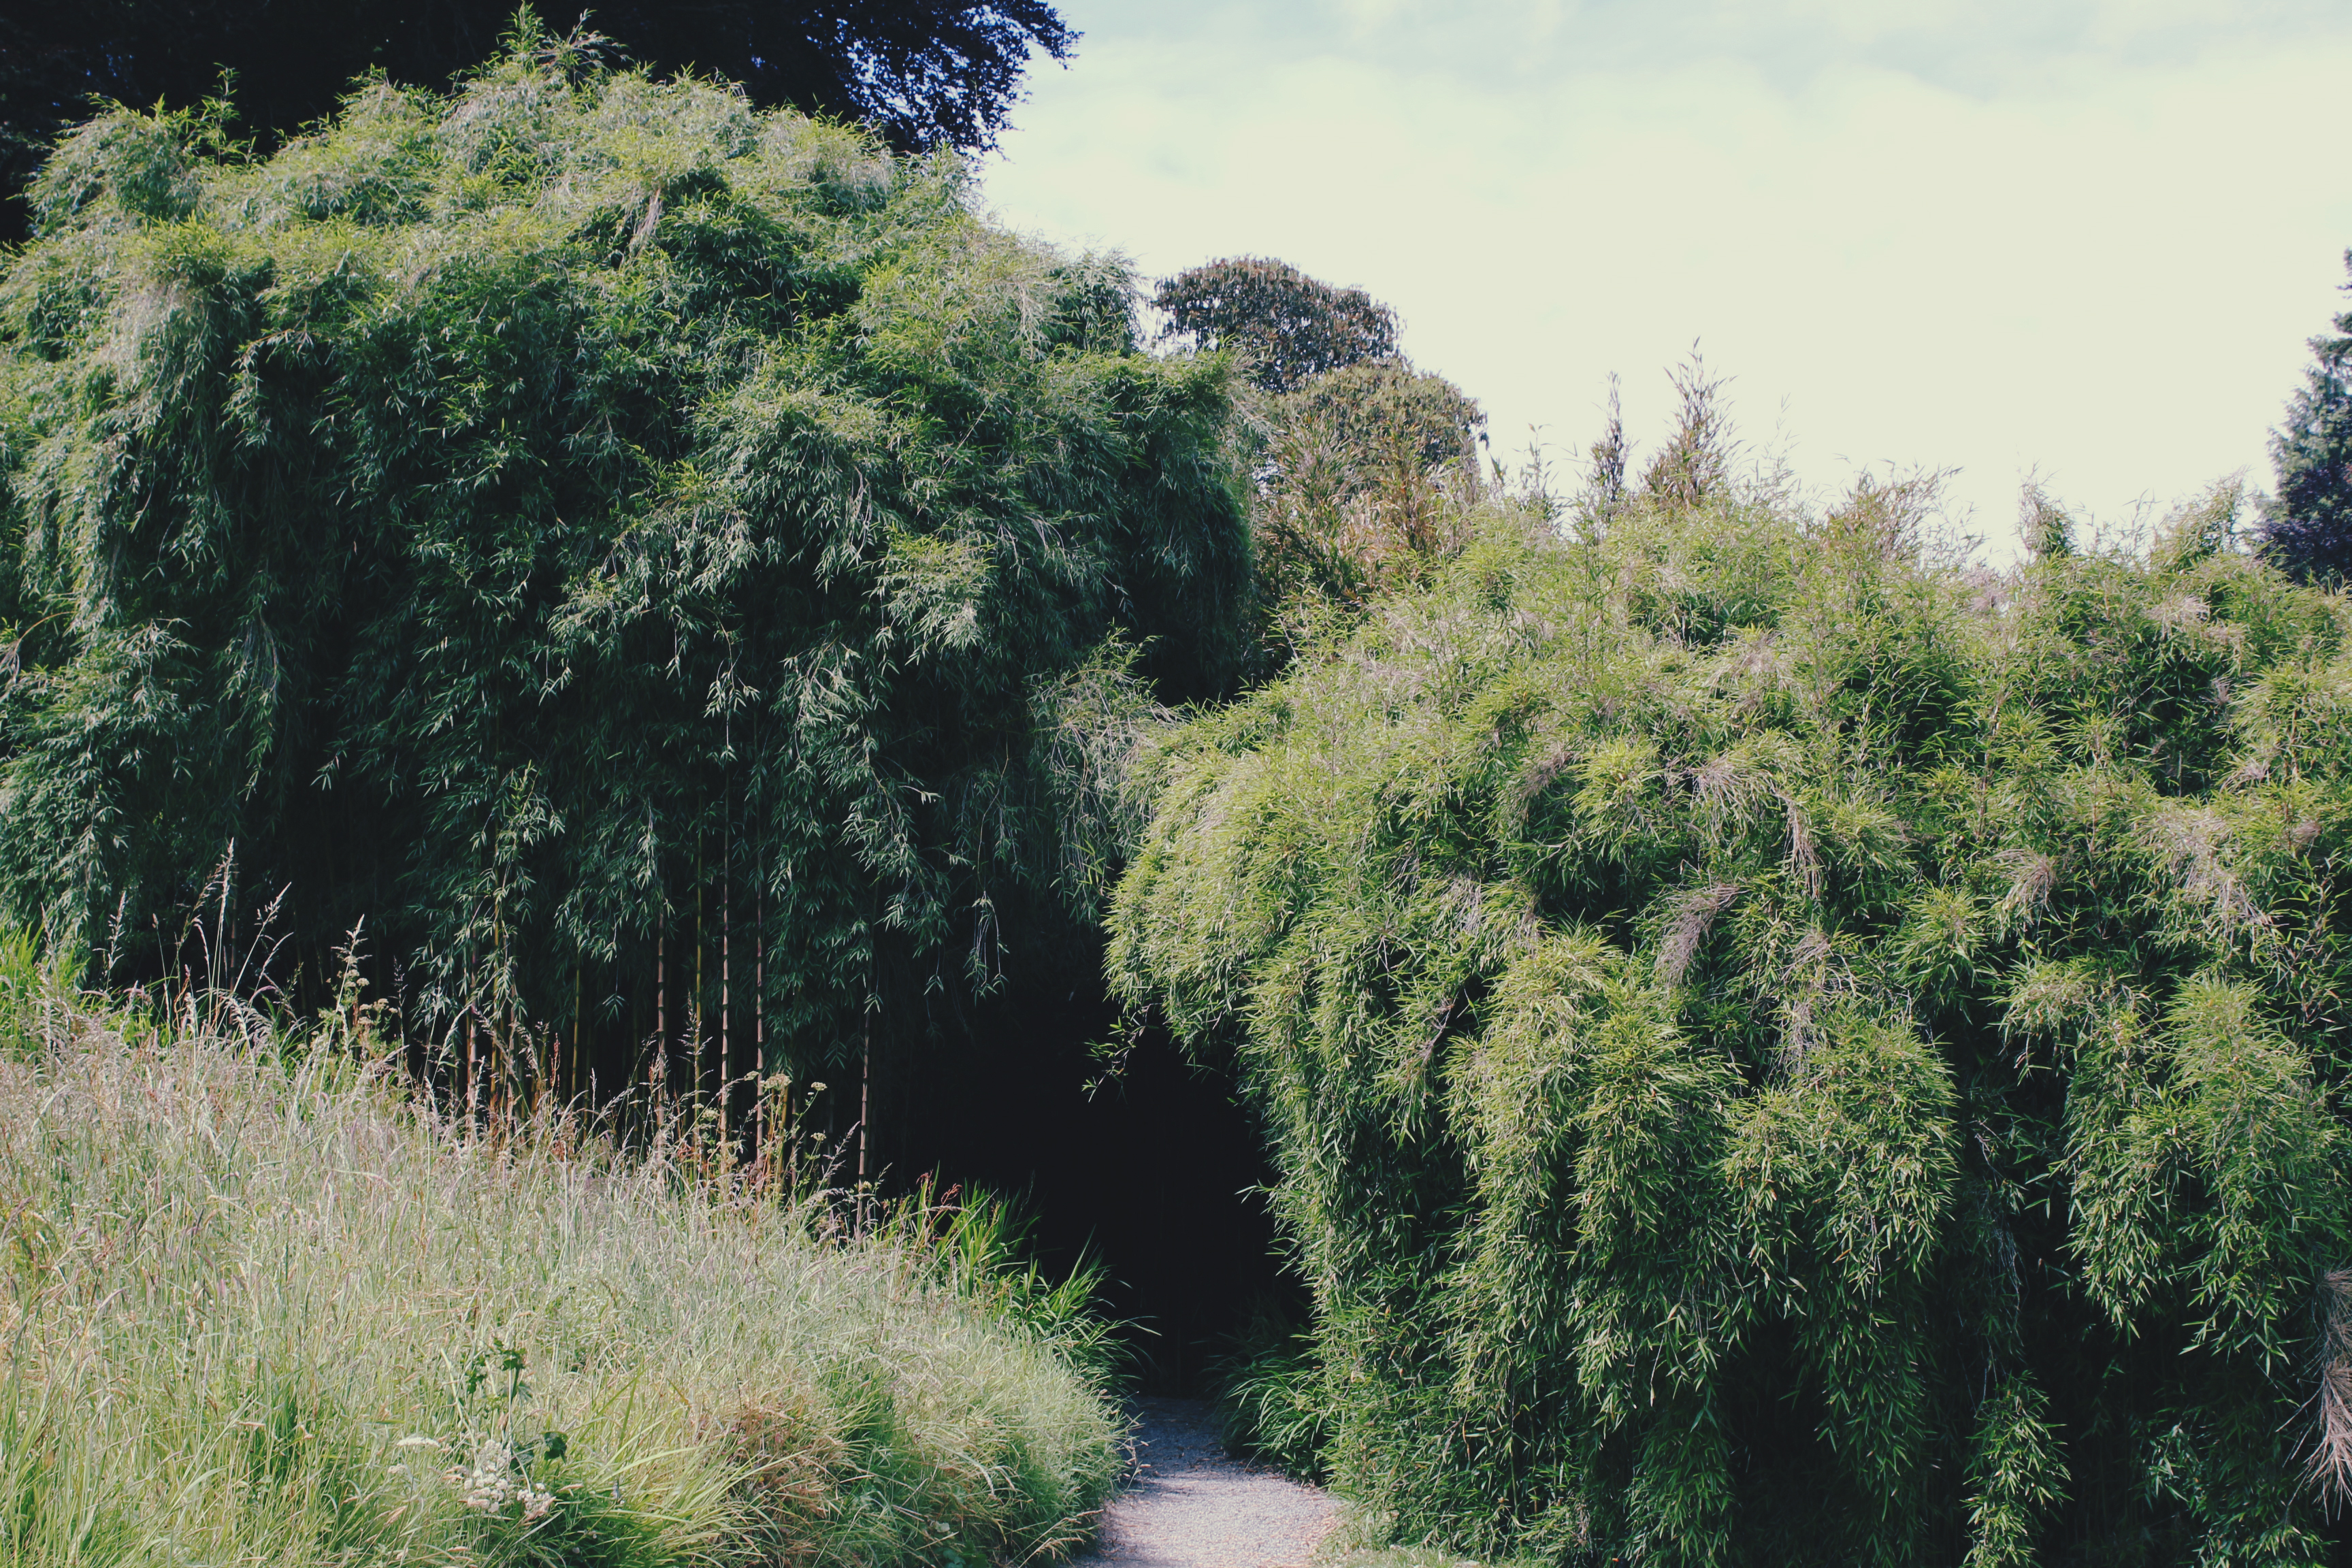 Entrance to the bamboo forest at Trebah Gardens, Cornwall